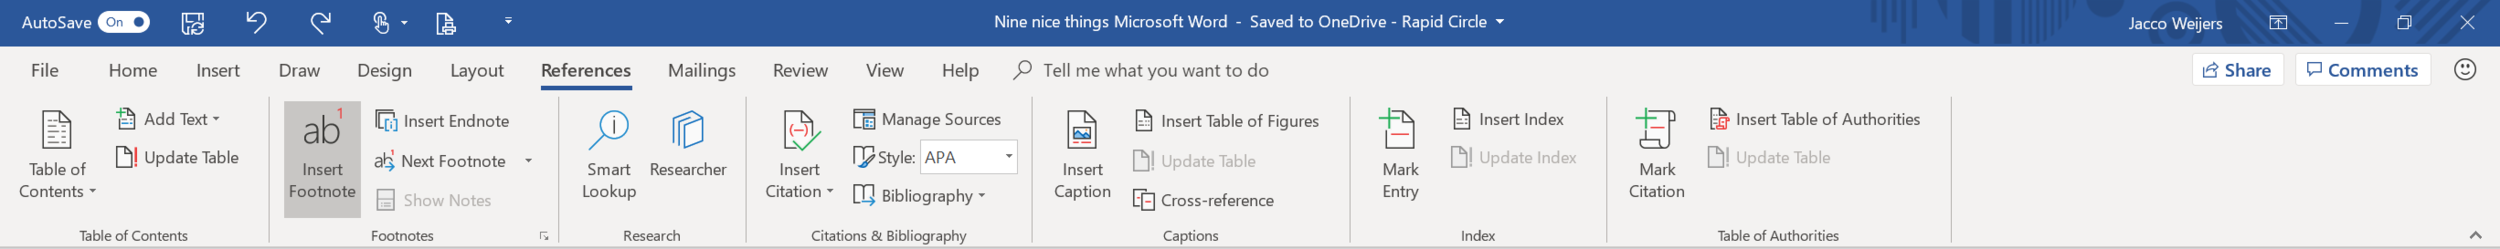 Microsoft Word footnotes.PNG